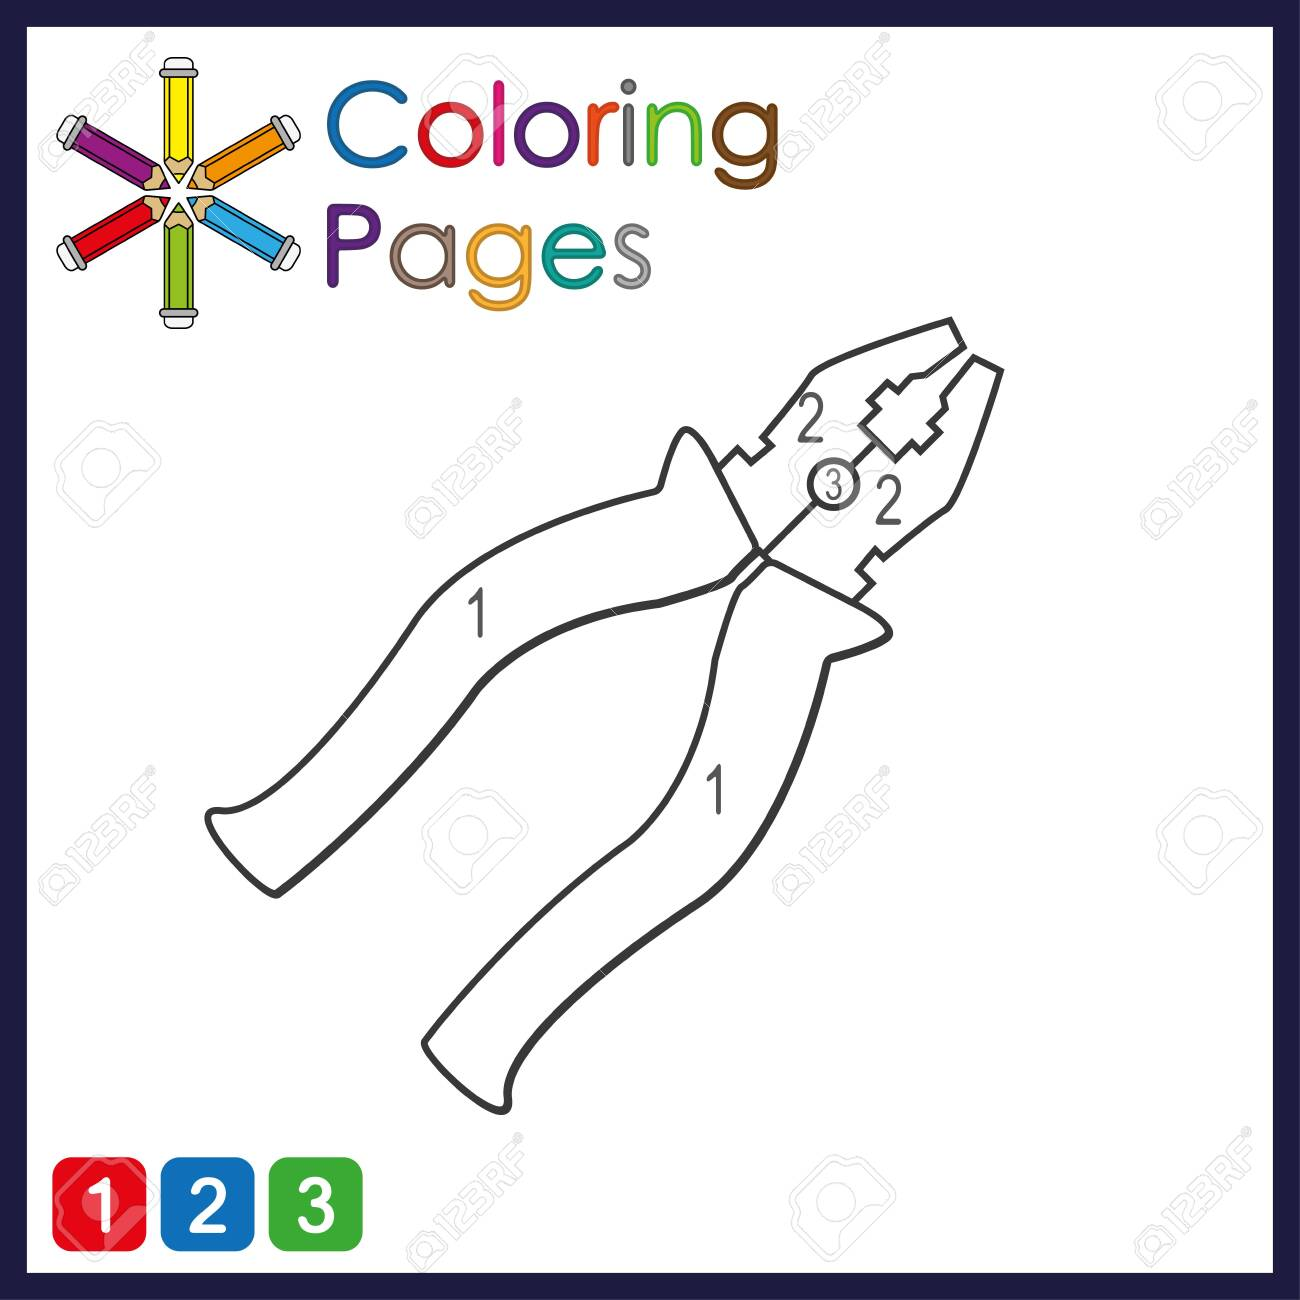 coloring page for kids, color the parts of the object according to numbers, color by numbers - 134352796